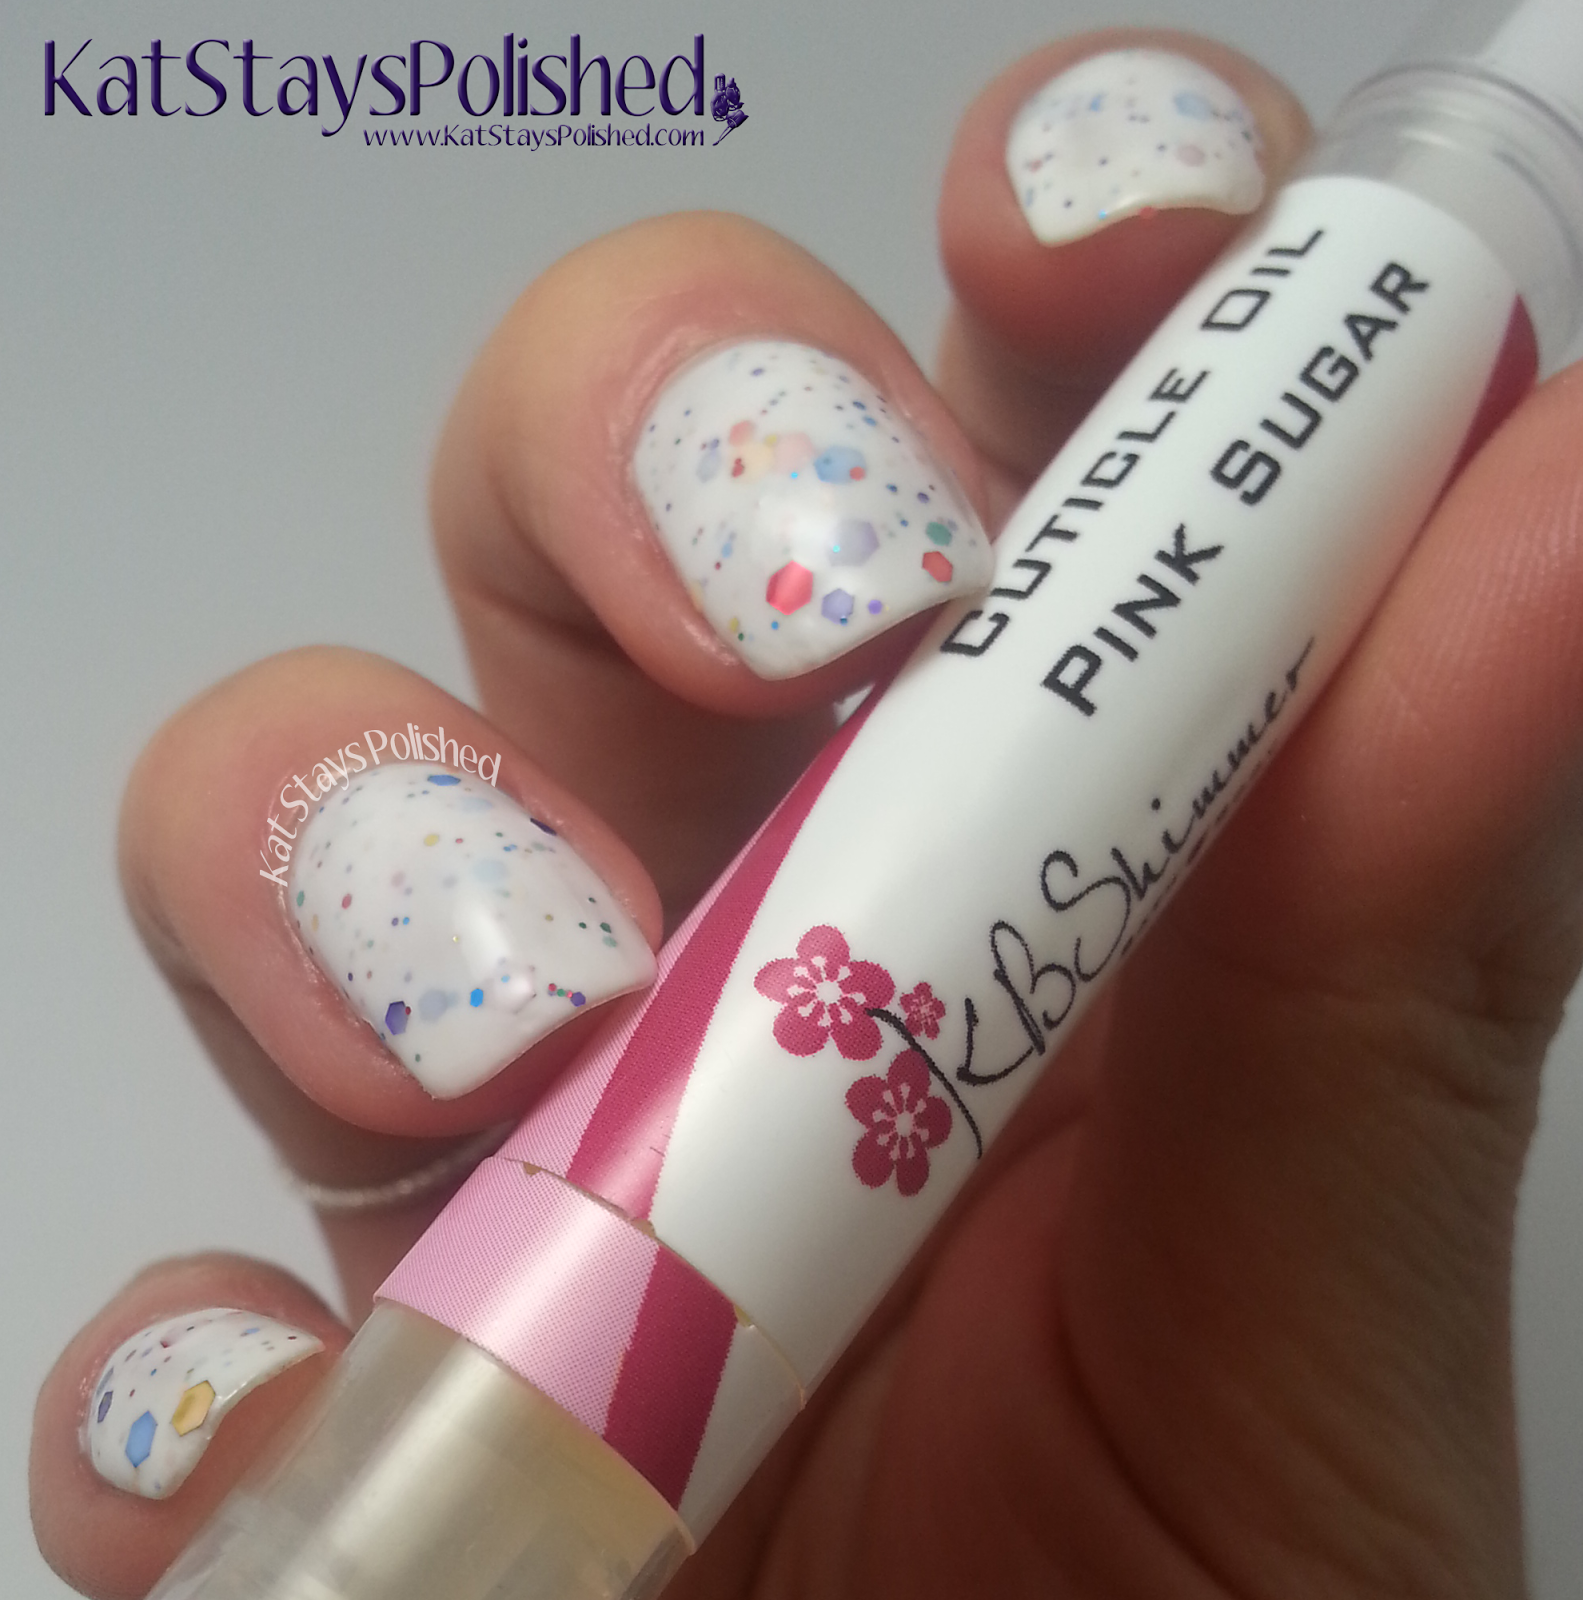 KBShimmer - Pink Sugar Cuticle Oil | Kat Stays Polished